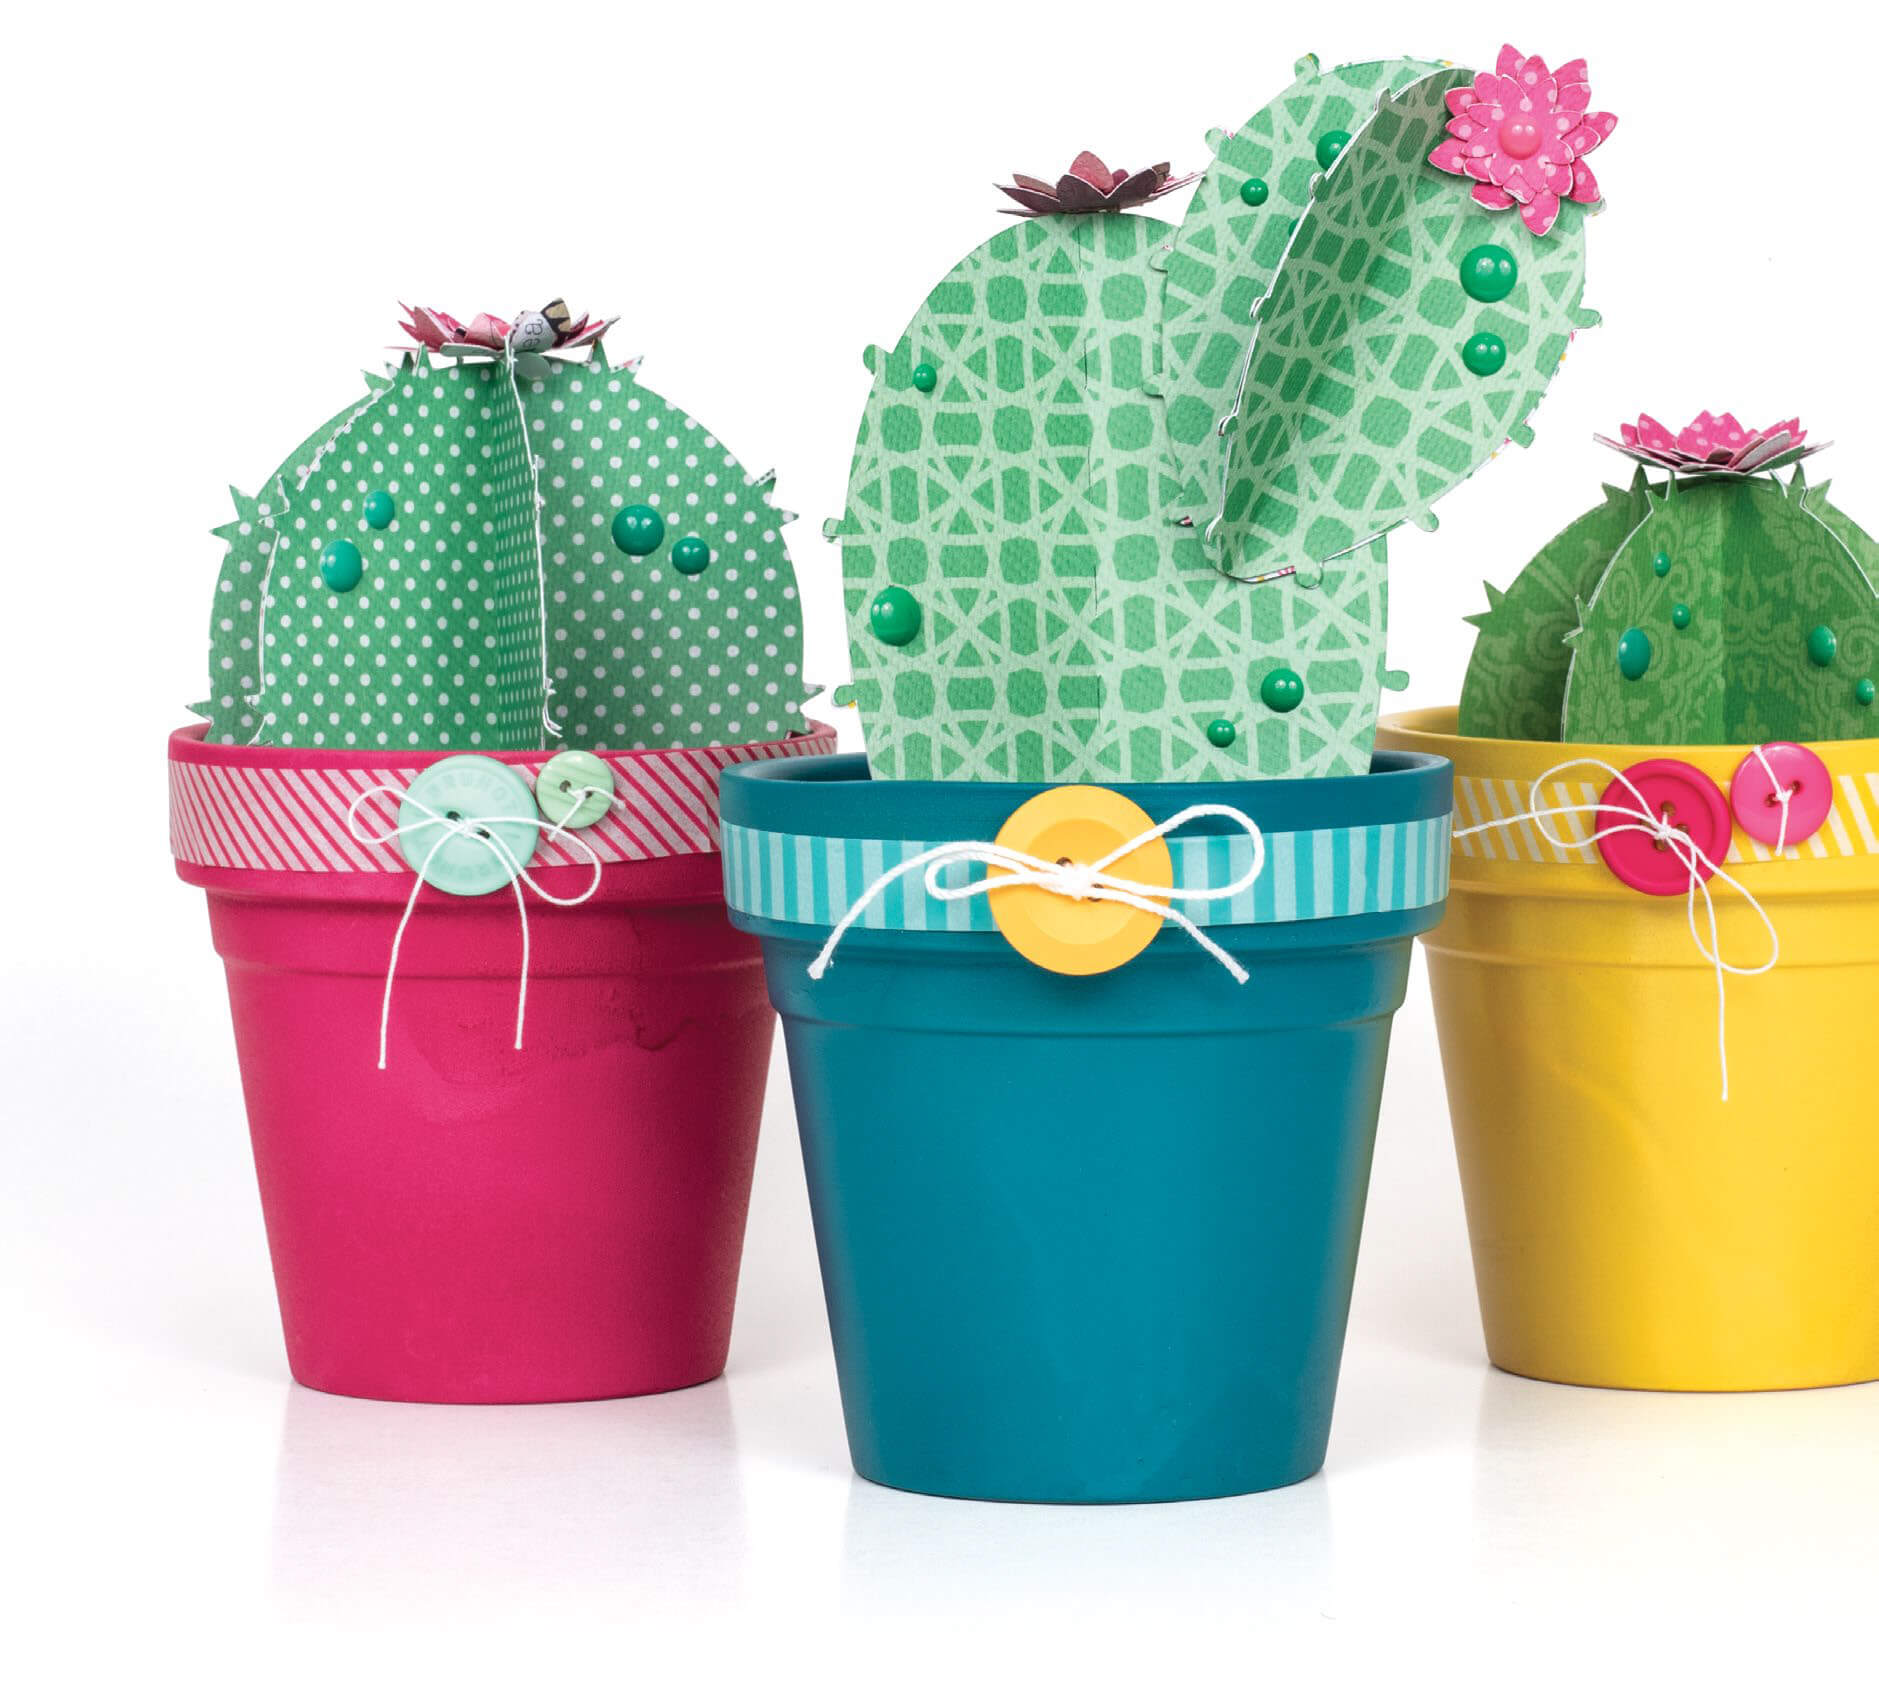 Scrapbook & Cards Today - Summer 2019 - Cactus Trio by Jennifer S Gallacher